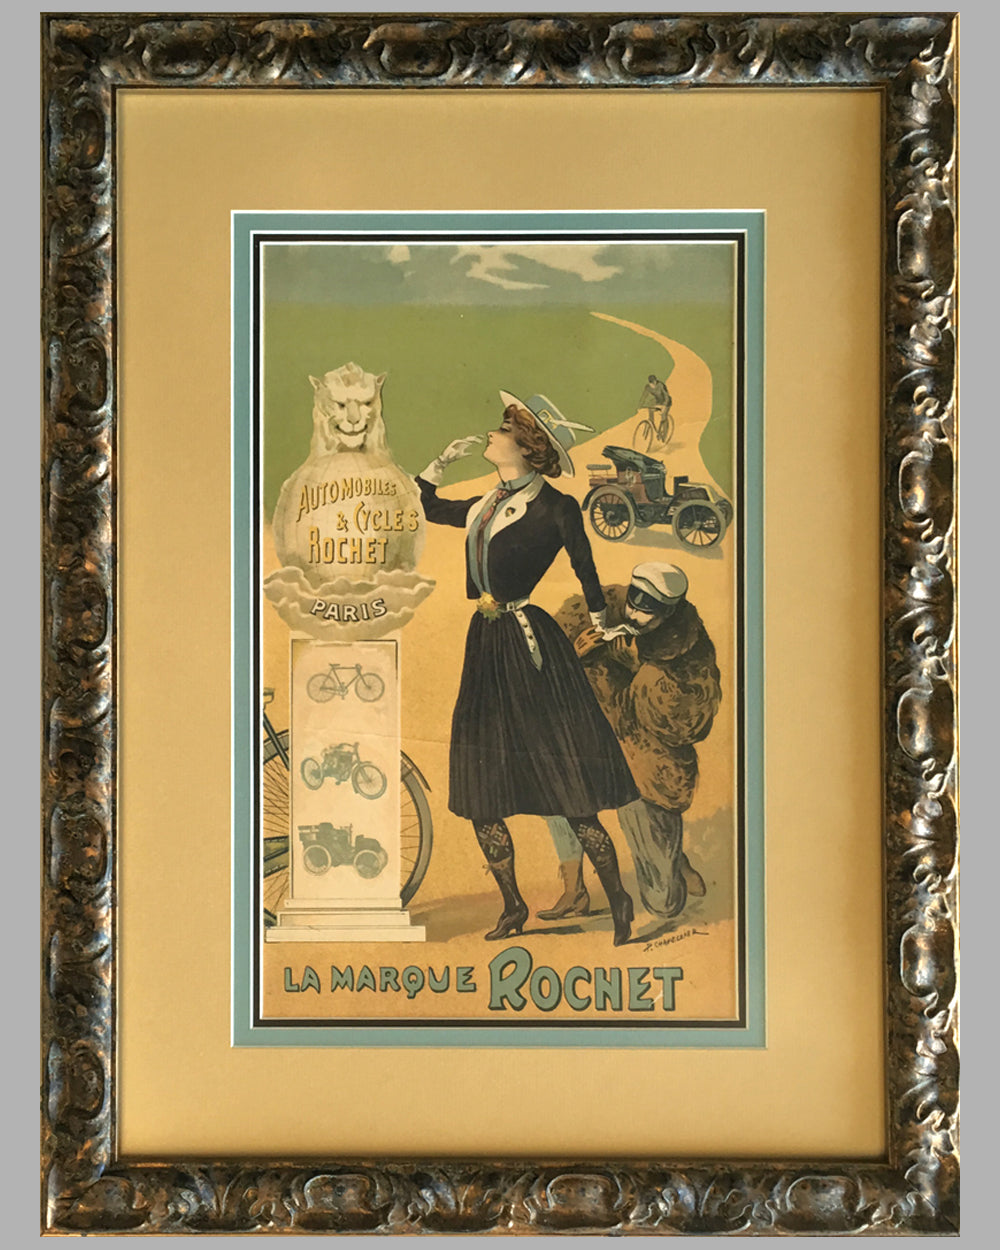 Automobiles & Cycles Rochet original poster by Philippe Chapellier circa 1900